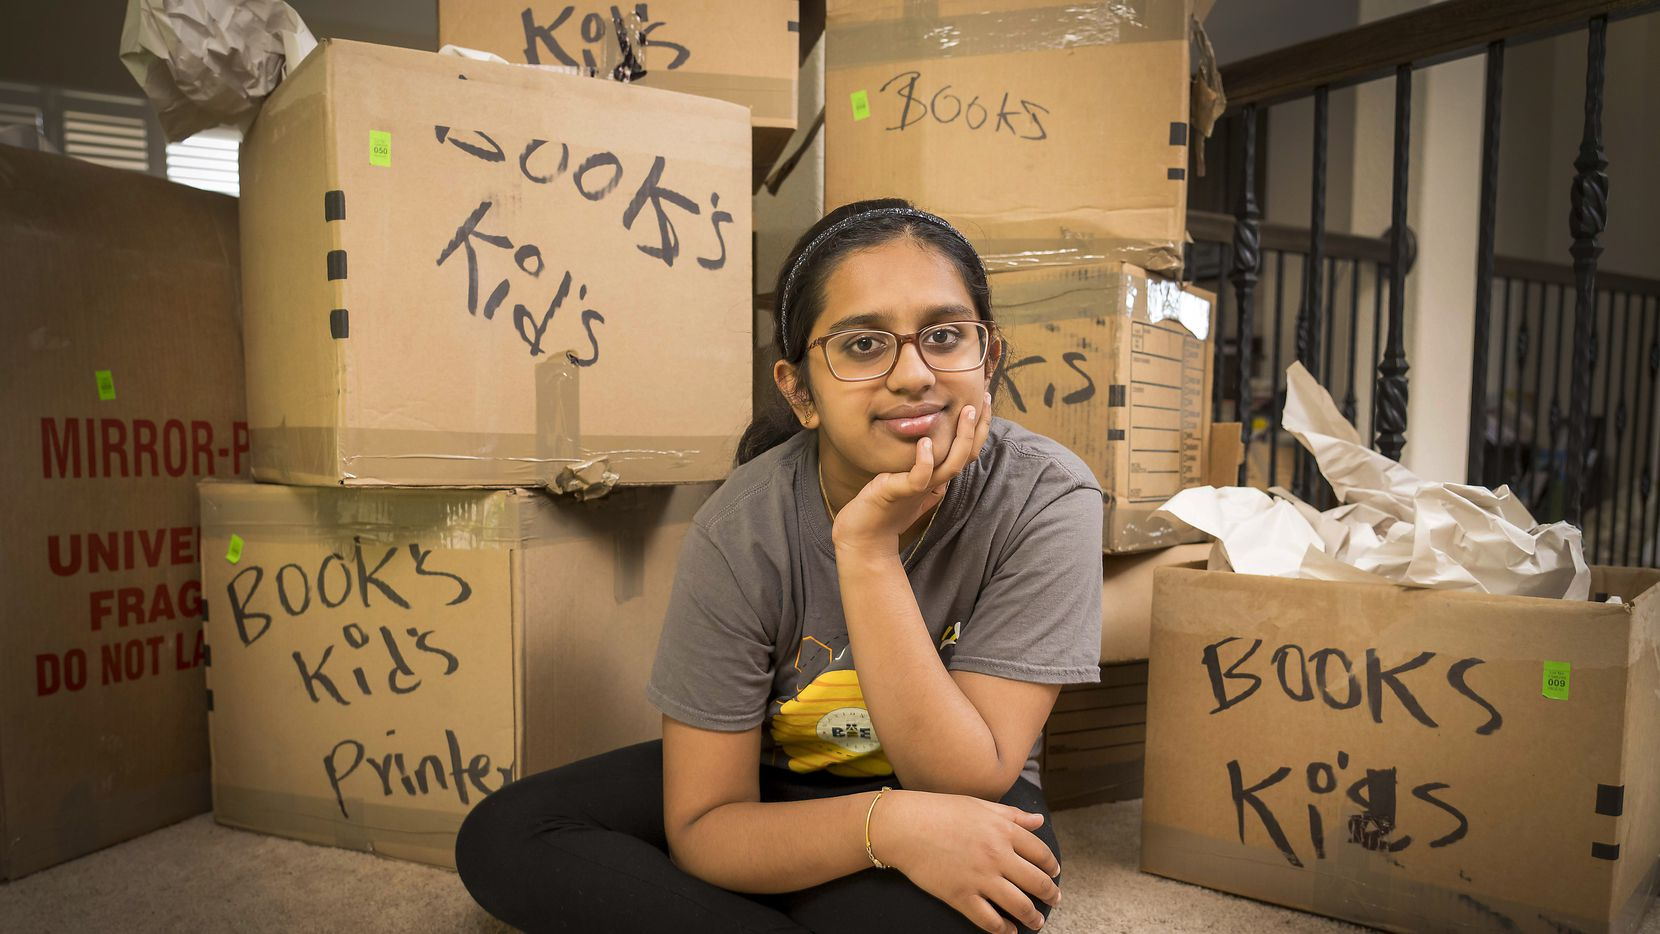 Chaitra Thummala photographed at her home on Tuesday, July 13, 2021, in Frisco, Texas. Thummala, 12, finished second at the Scripps National Spelling Bee finals last week. She is originally from San Francisco but her family recently moved to Frisco. (Smiley N. Pool/The Dallas Morning News)